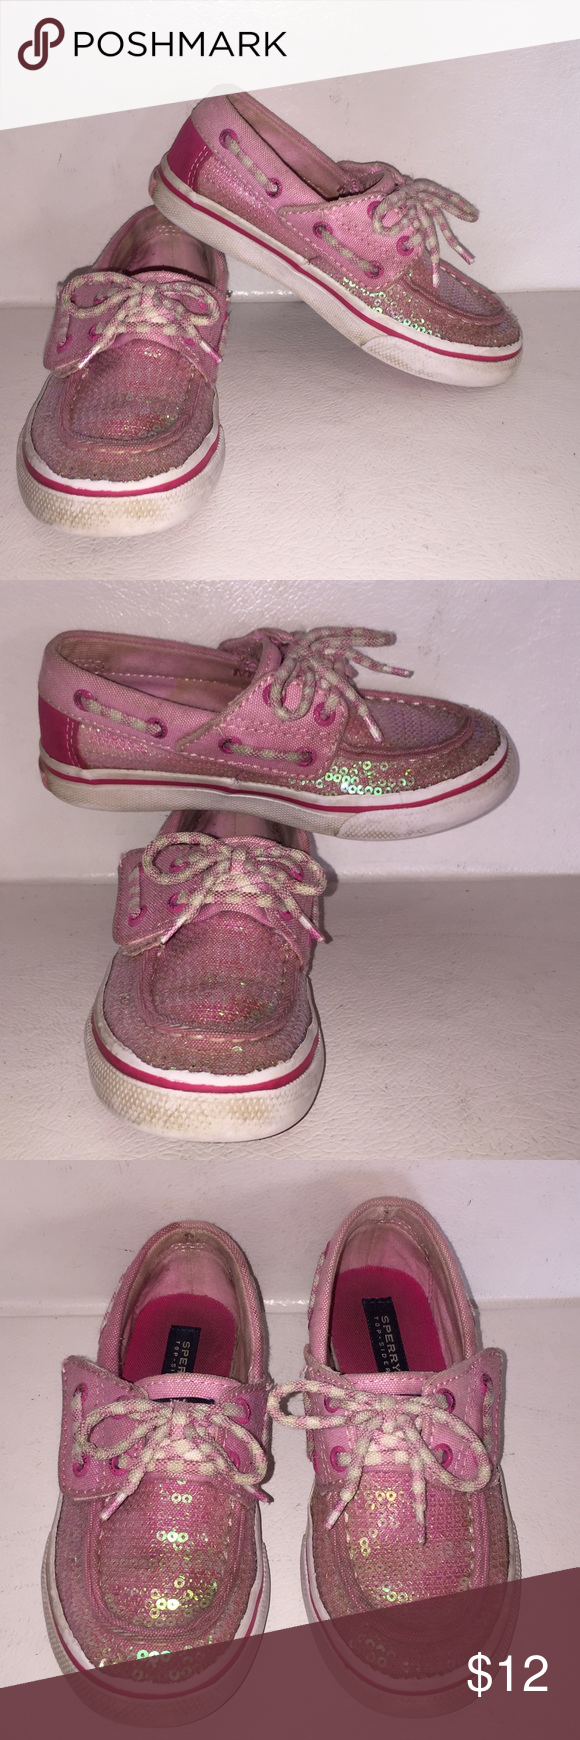 Pink Sequin SPERRY Boat Shoes So fun so sparkly. So much sequins. Theses shoes are gently used but a little dirty. Nothing a wash can't handle Sperry Shoes